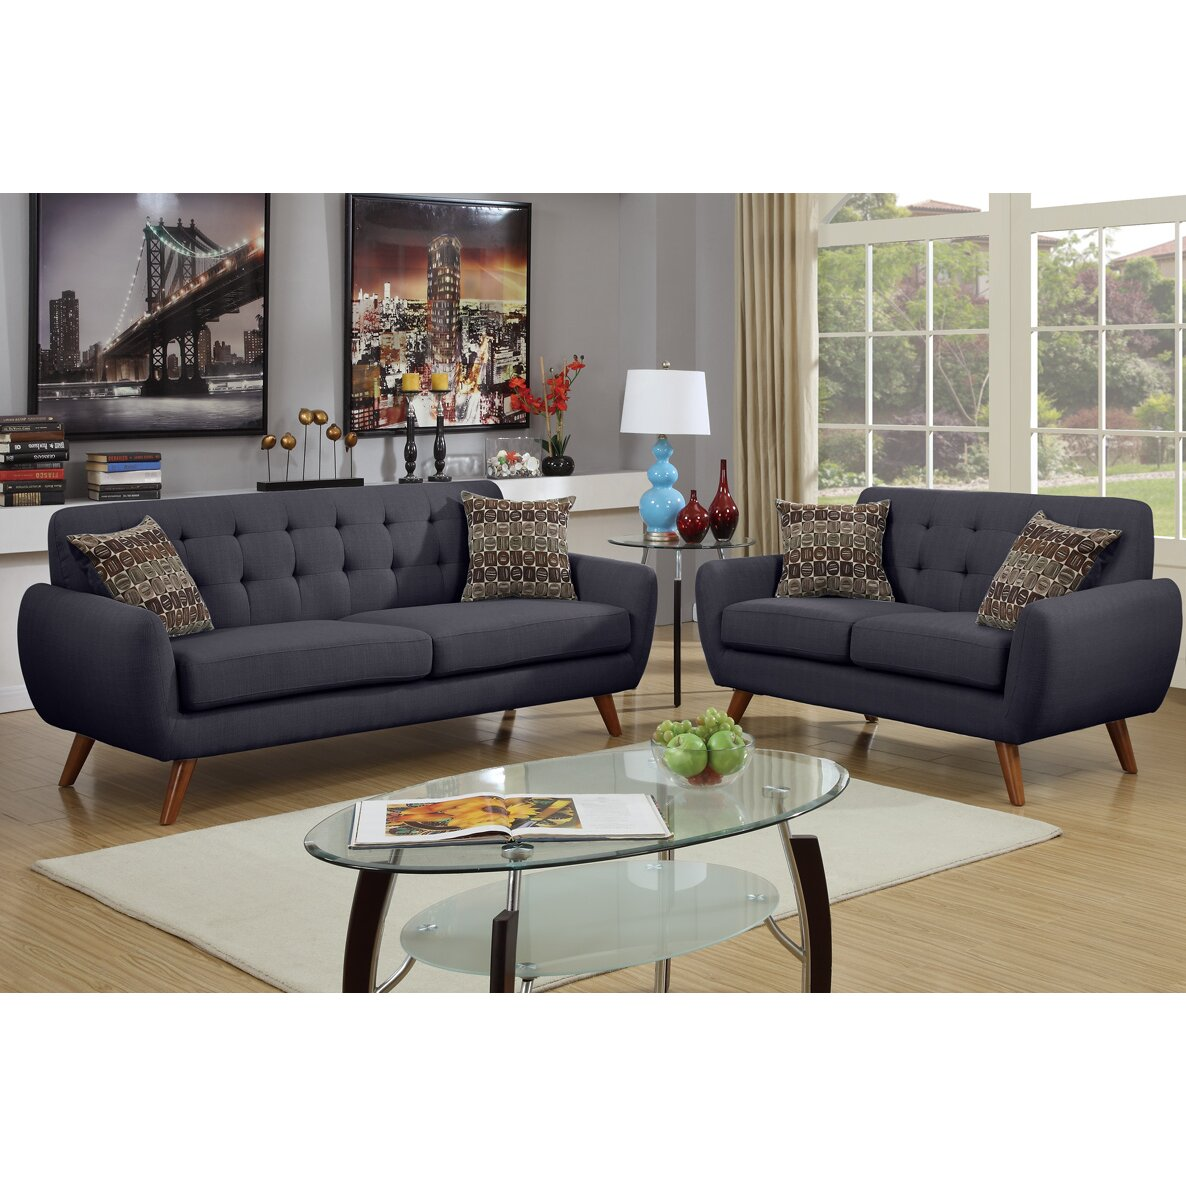 Poundex bobkona sonya 2 piece sofa and loveseat set for 2 piece furniture set